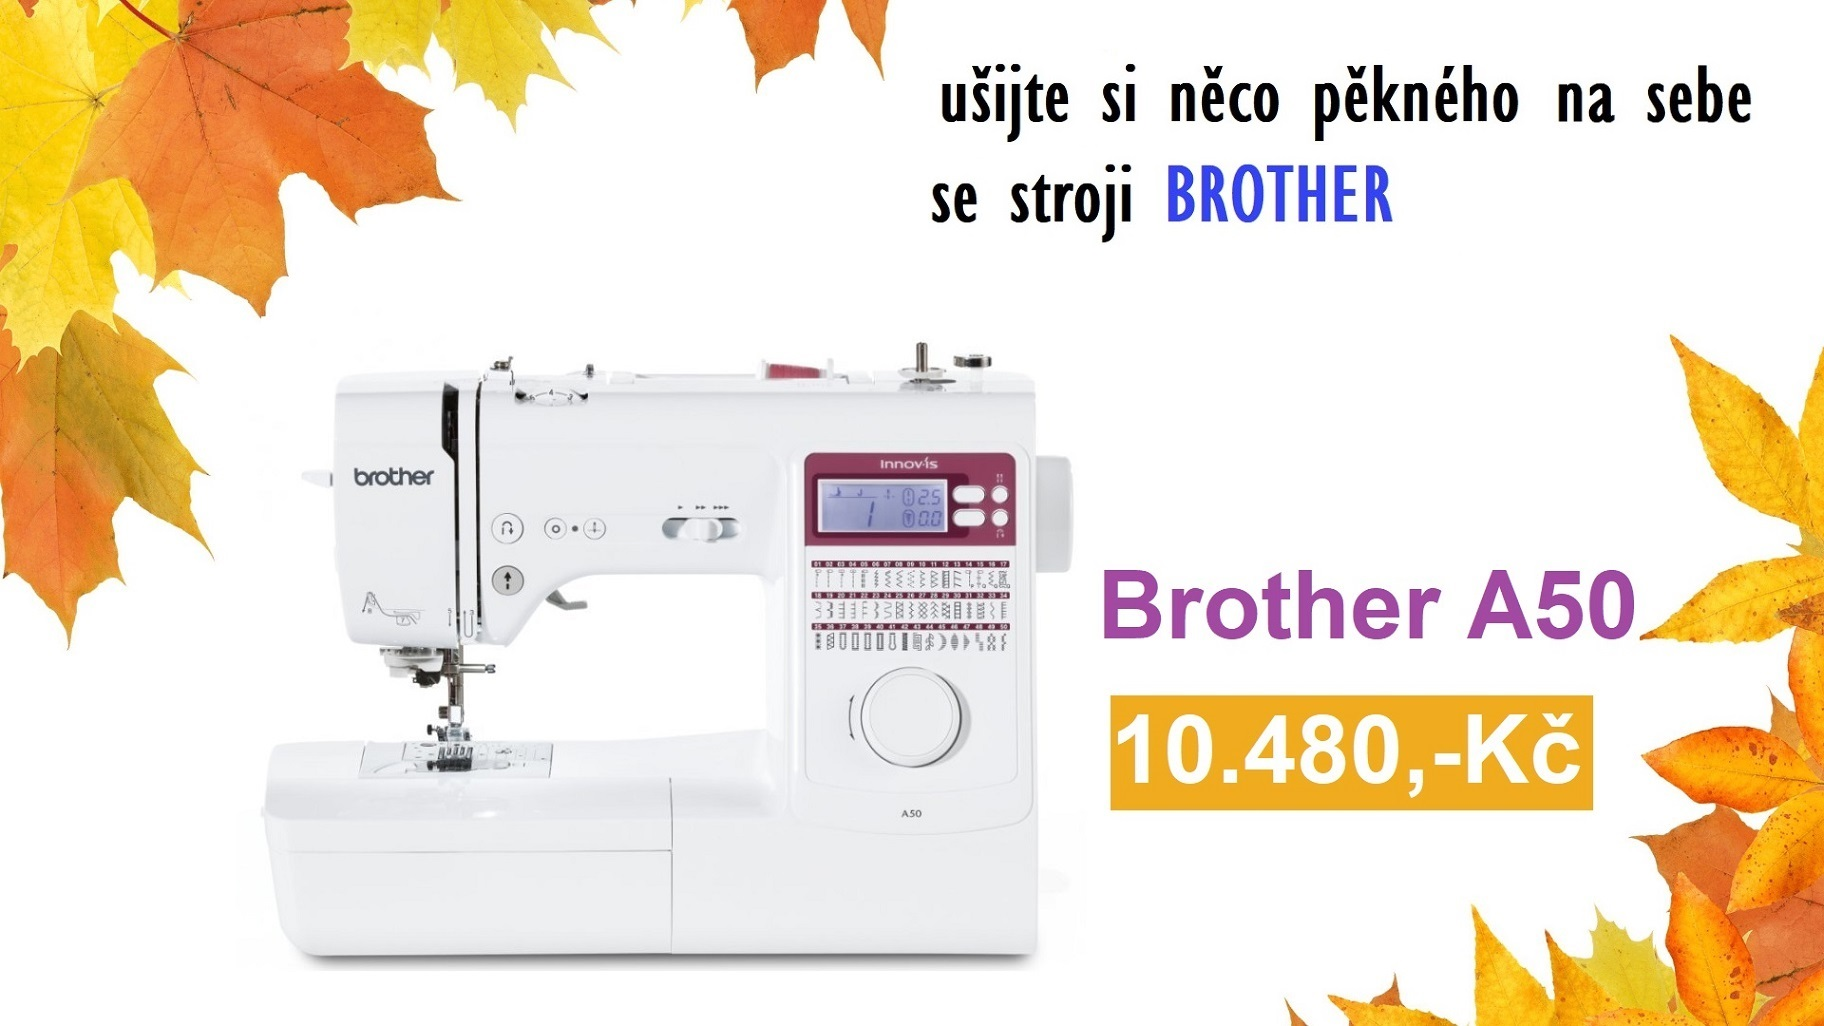 Brother A50